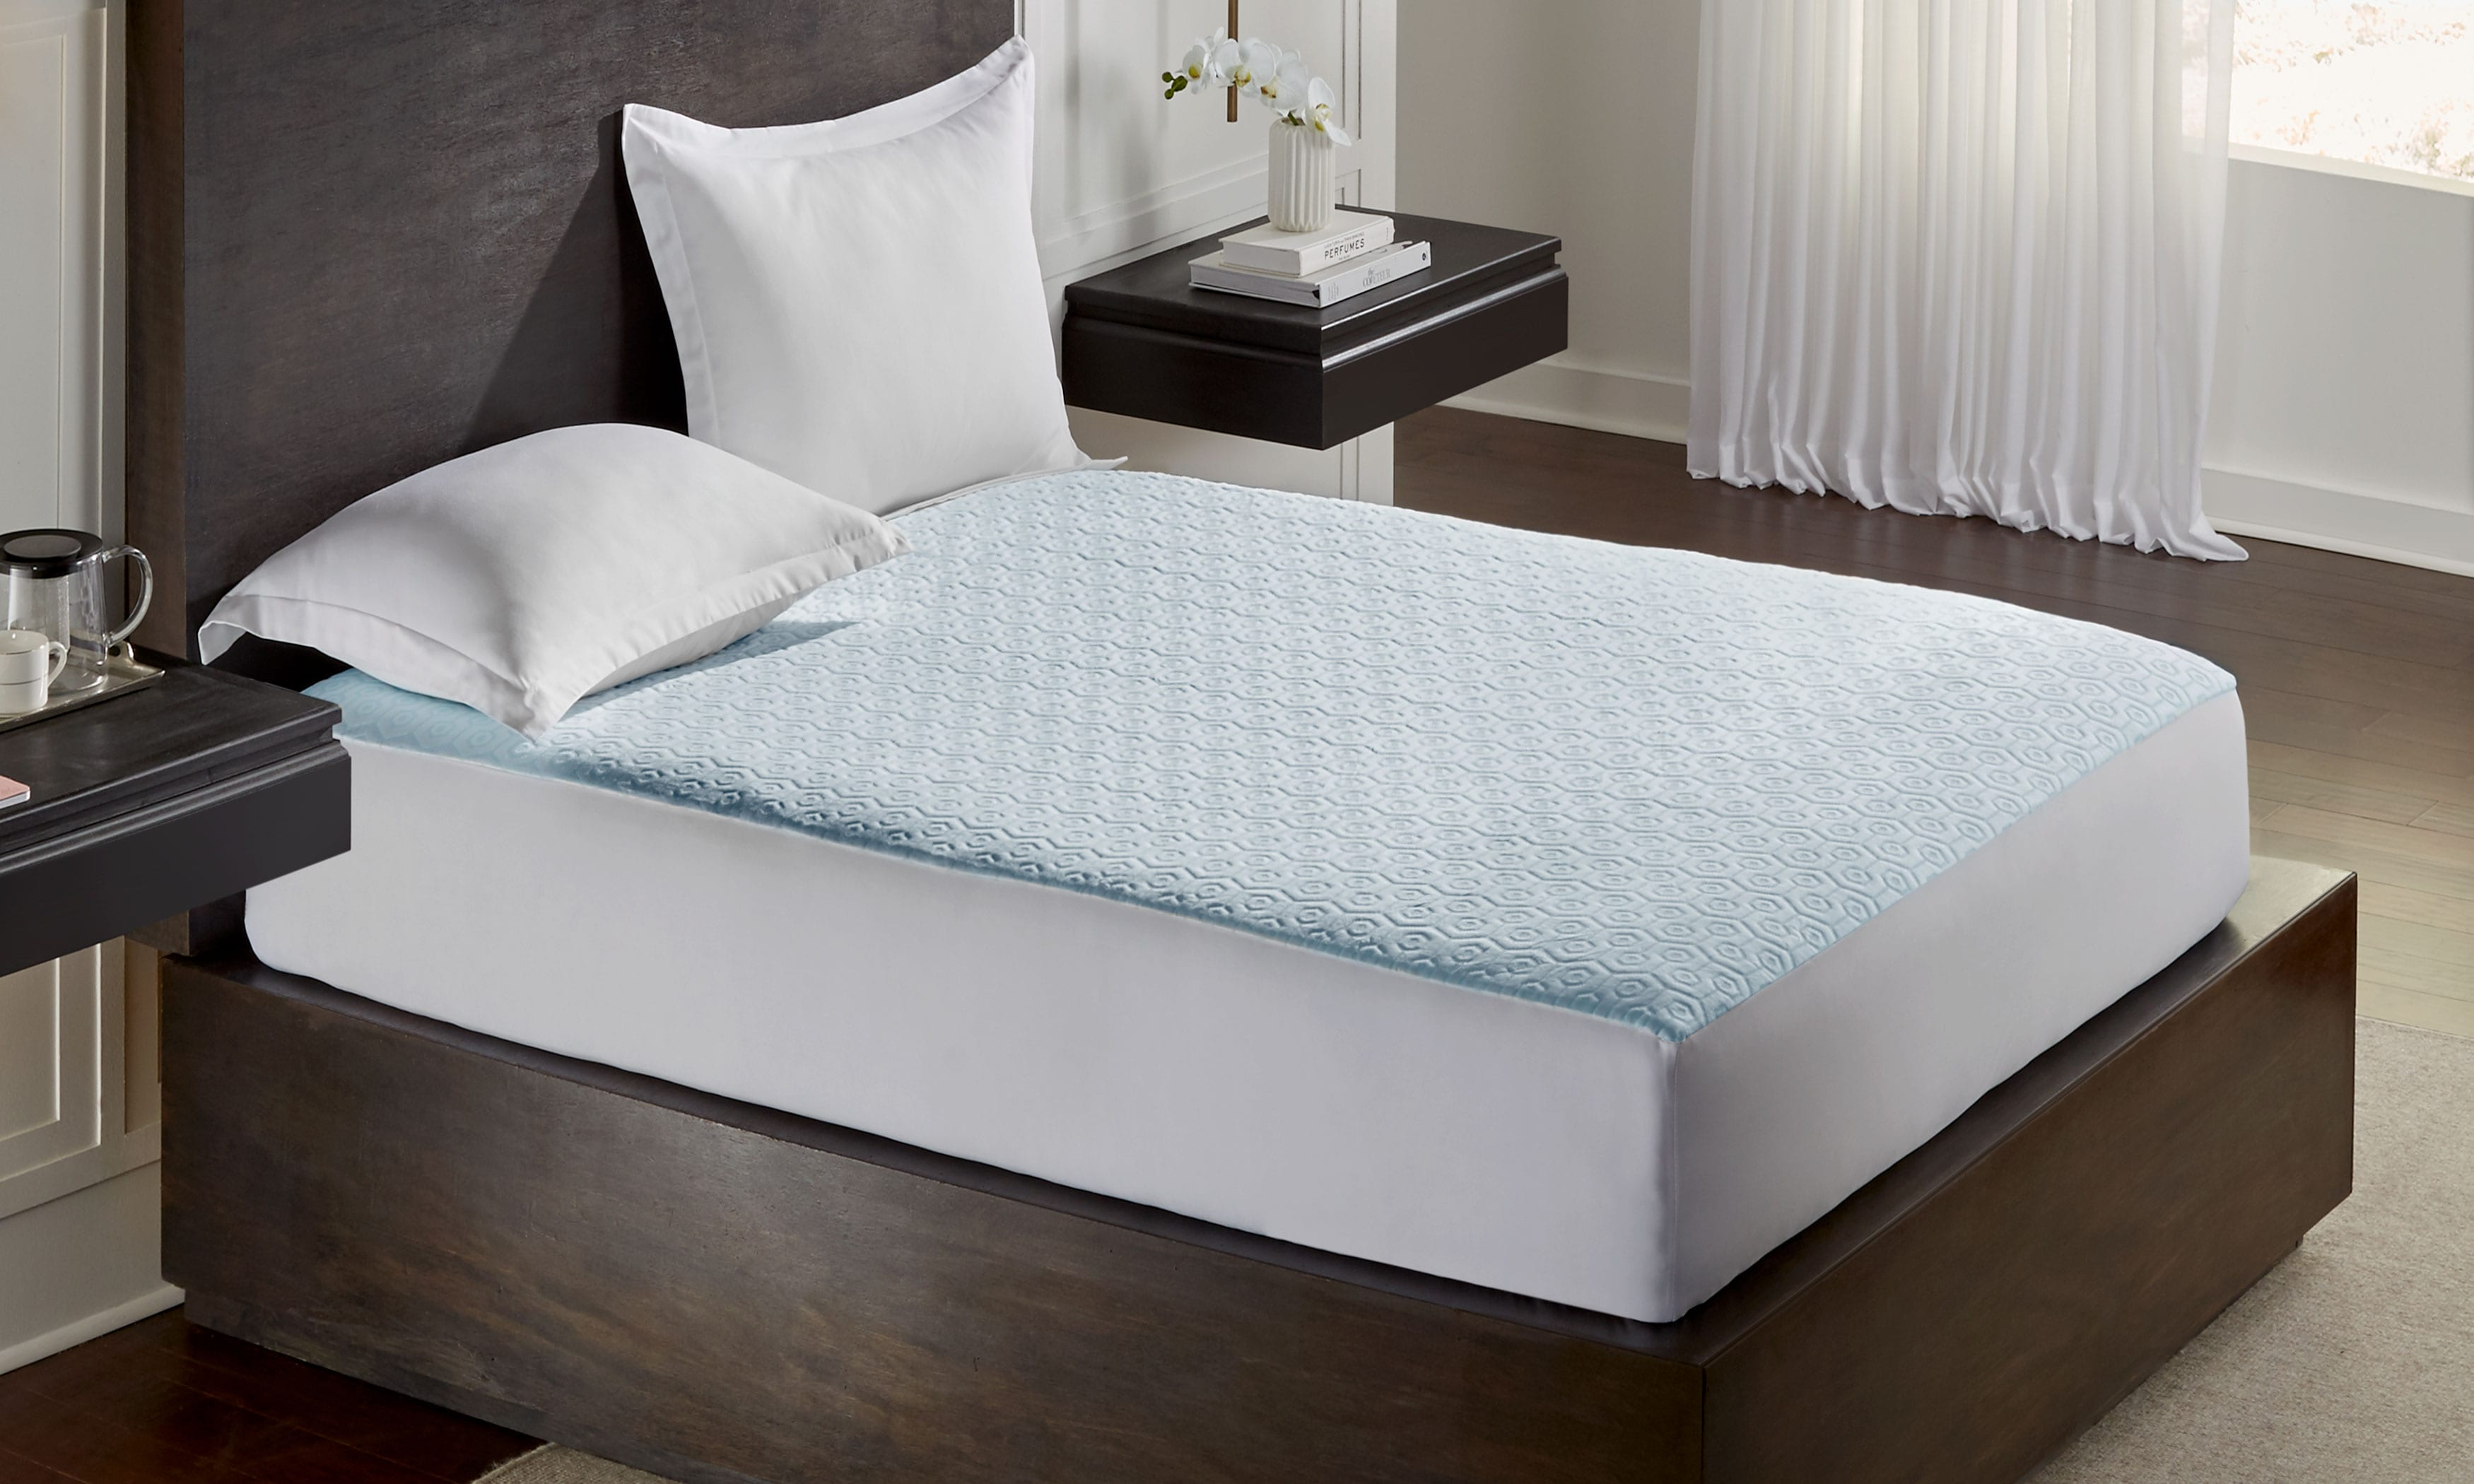 Best Cooling Mattress Pad Review by www.snoremagazine.com